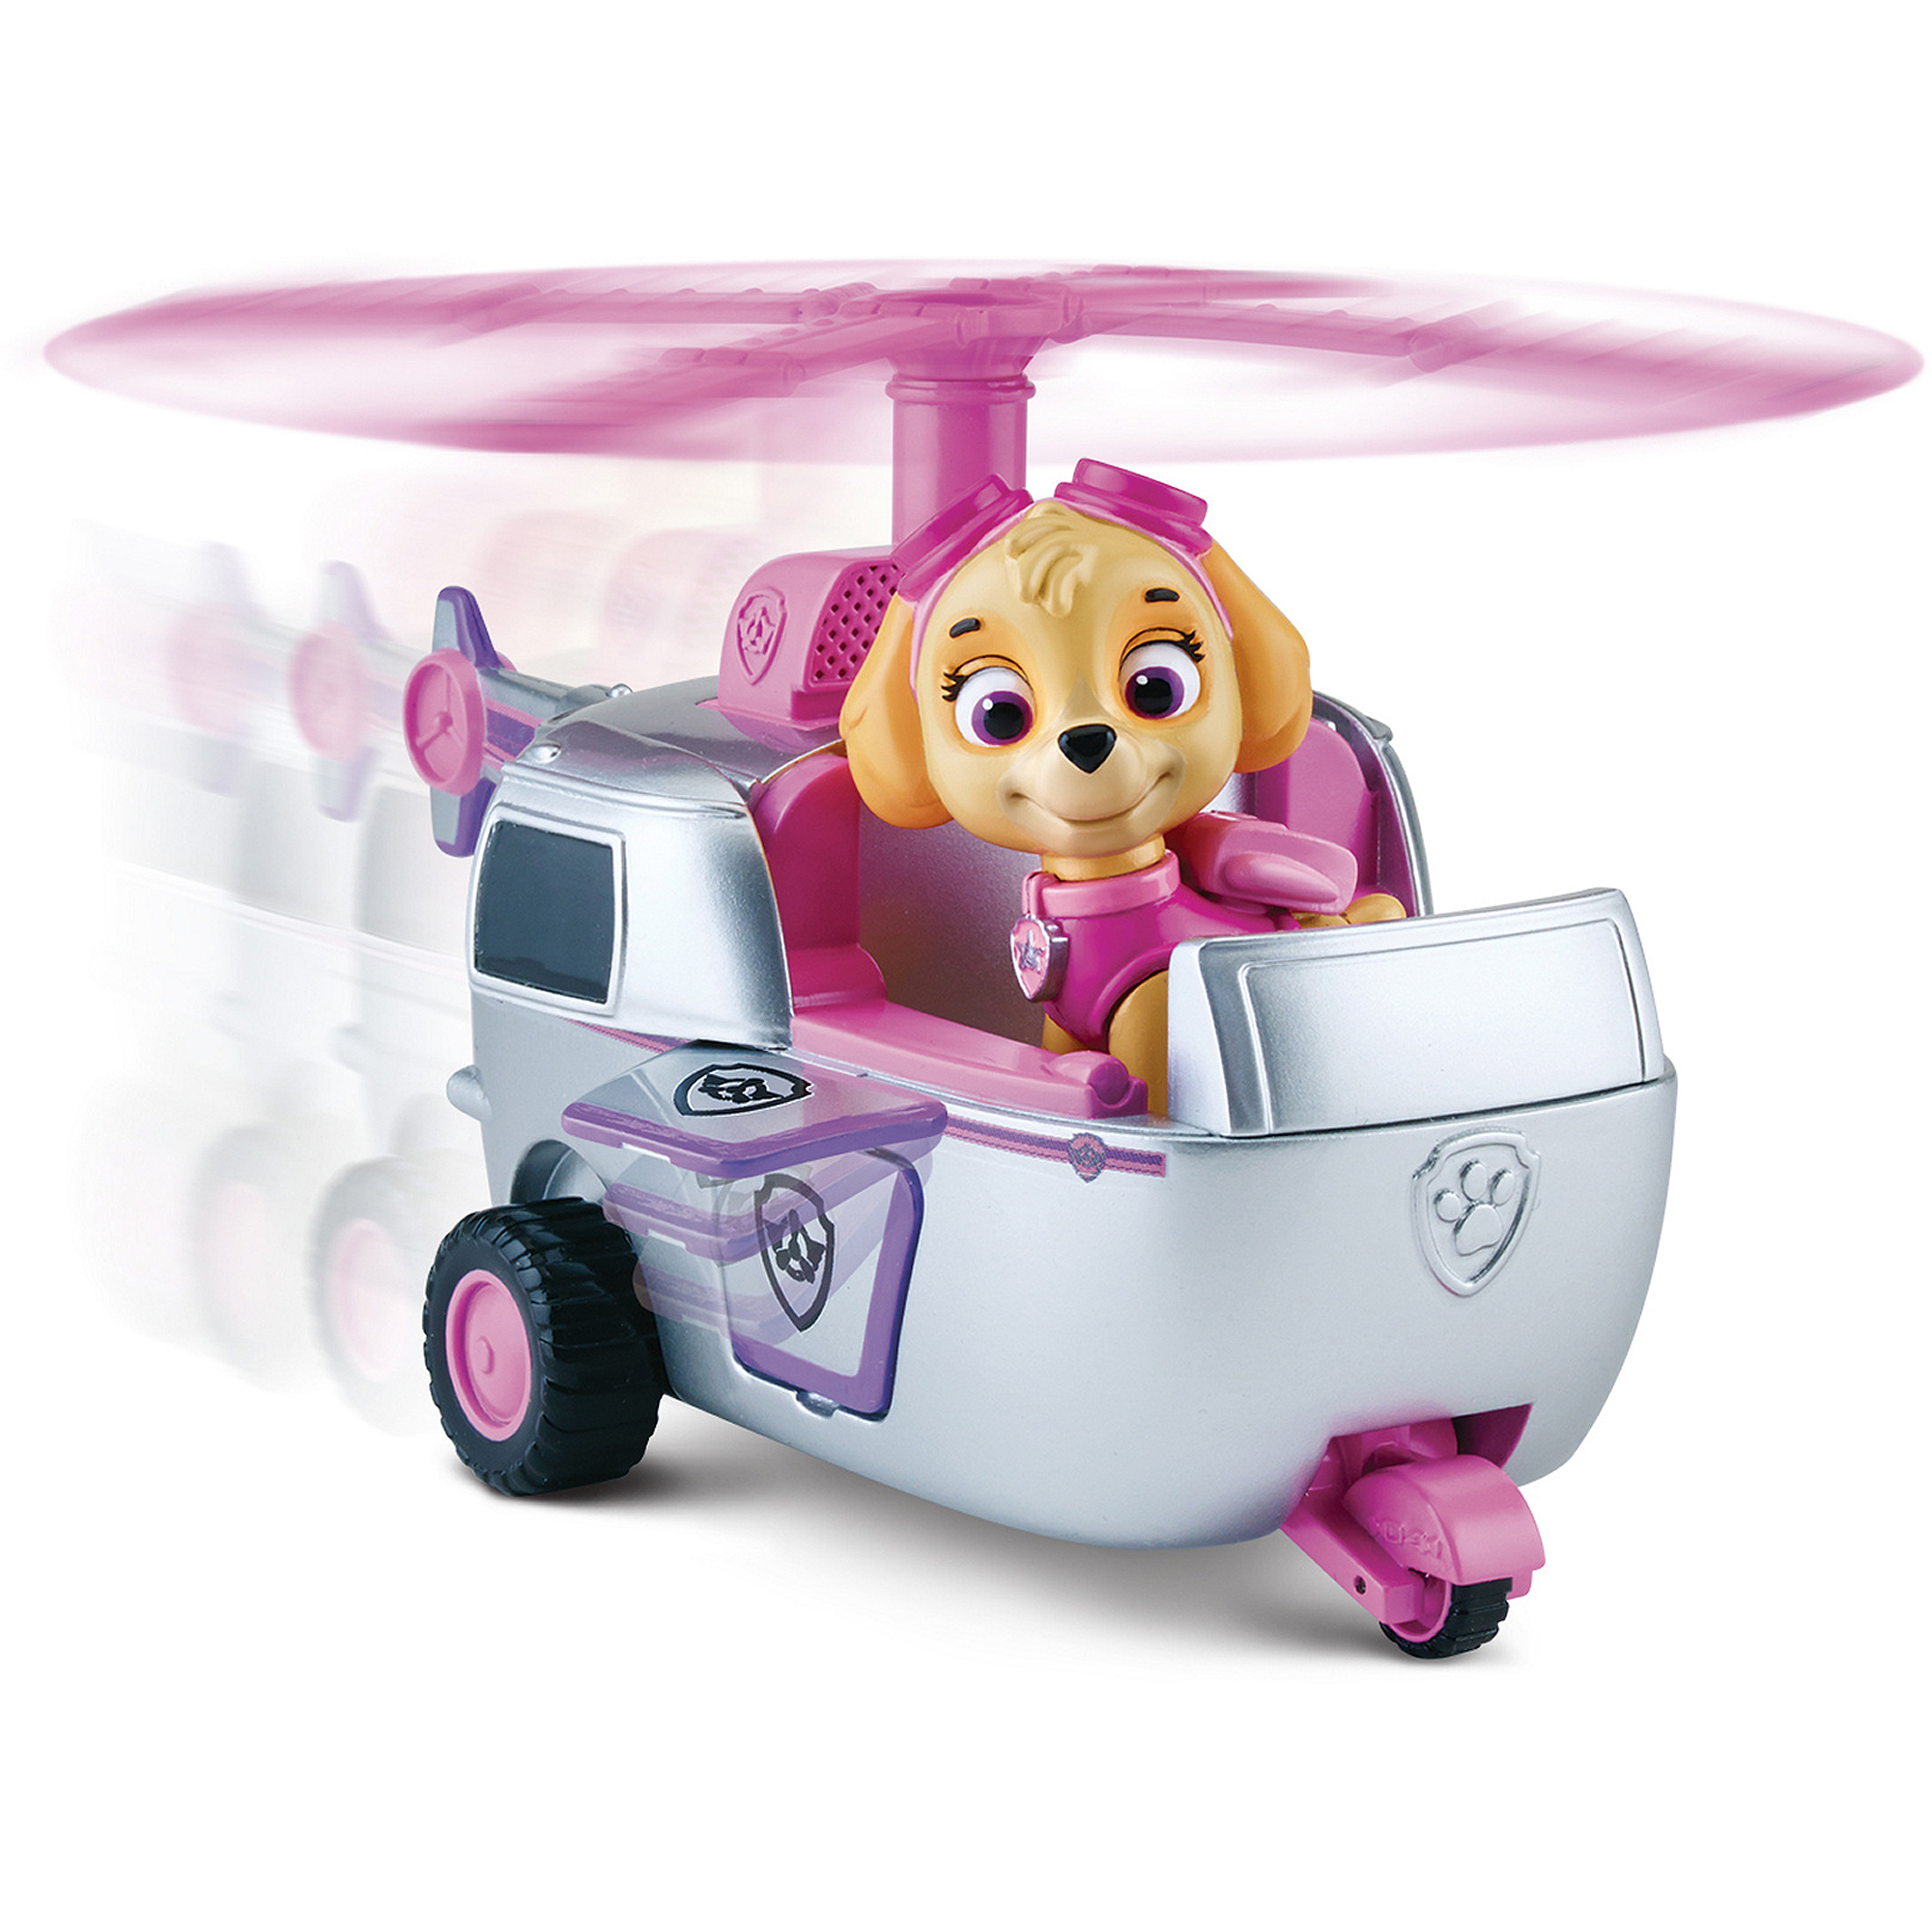 Nickelodeon Paw Patrol - Skye's High Flyin' Copter, Vechicle and Figure